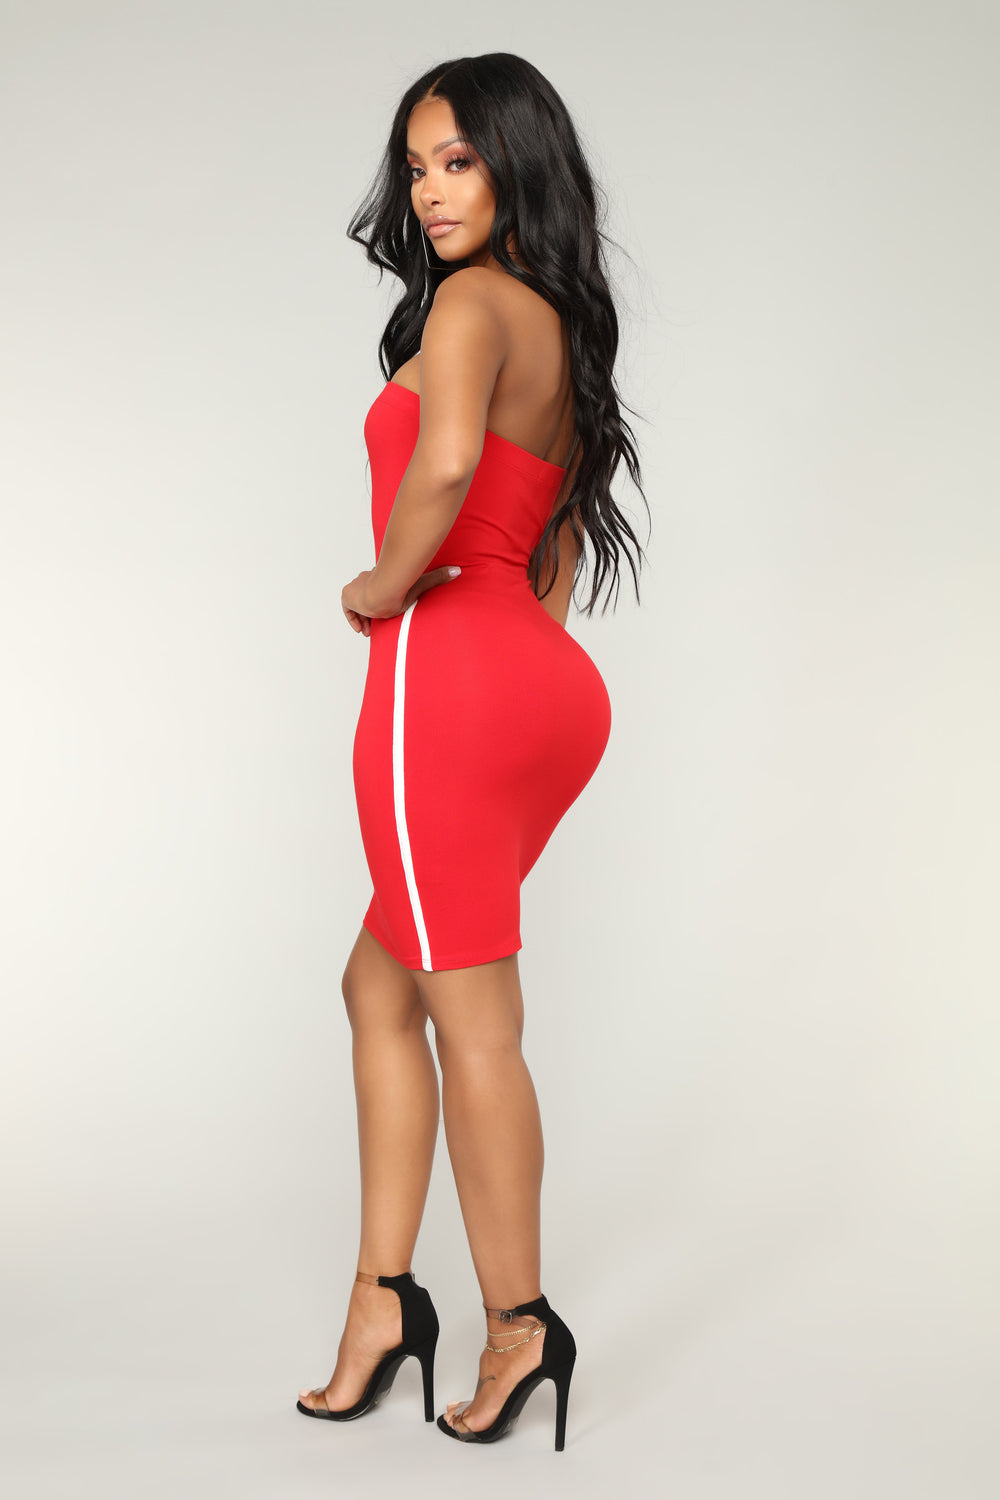 Like A Champ Dress - Red